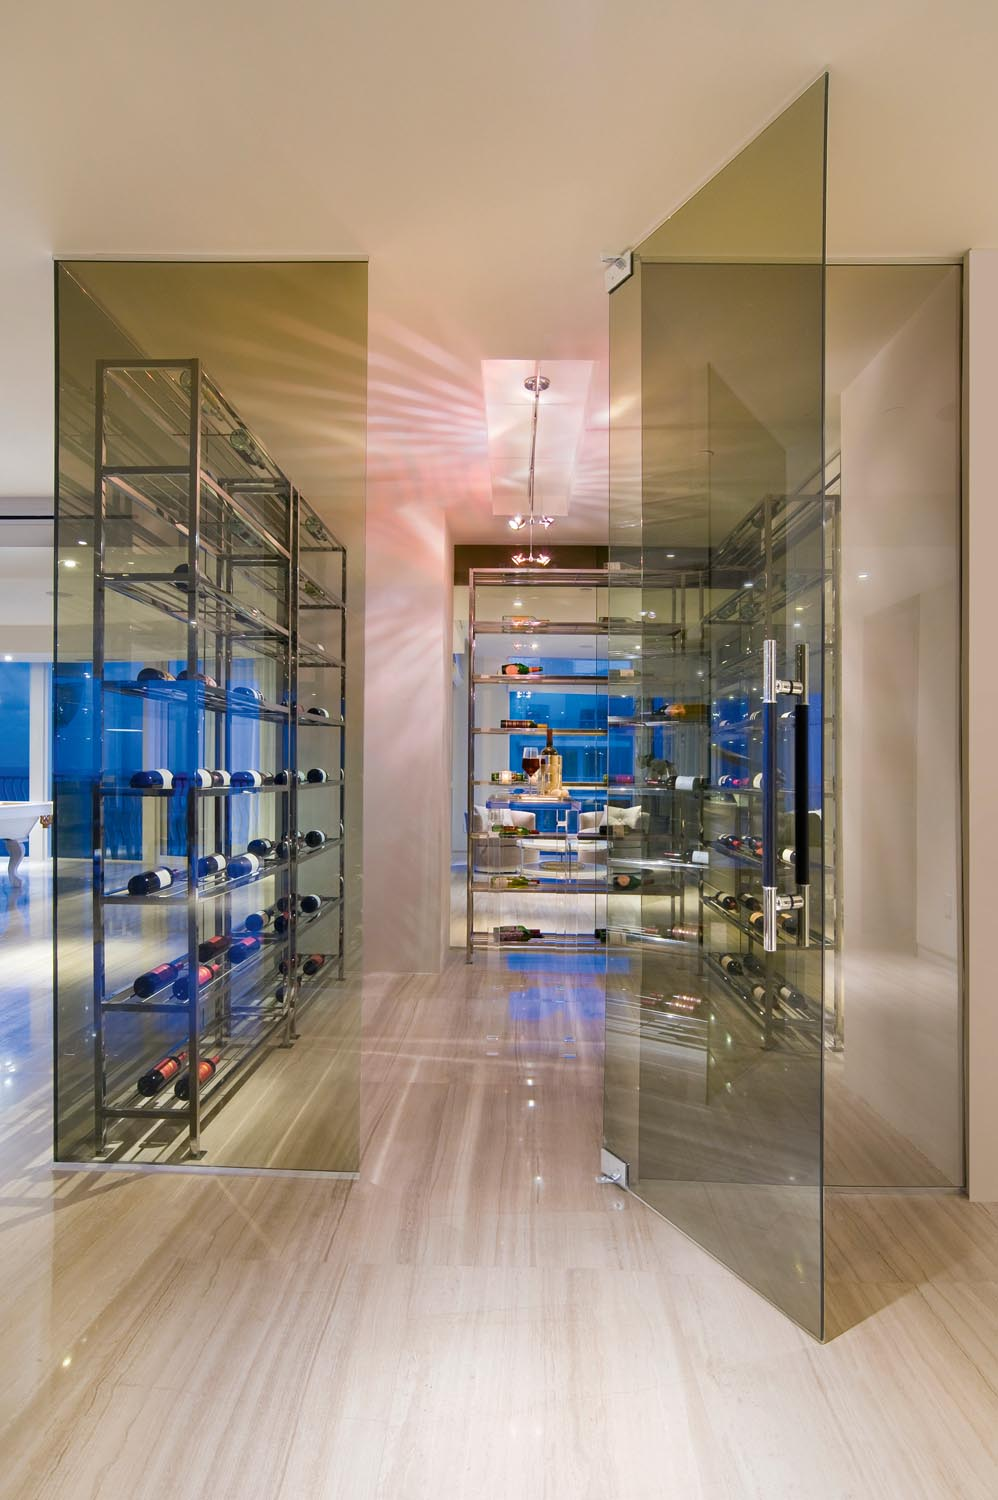 Featuring not one but two wine cellars, this penthouse truly is an entertainer's paradise